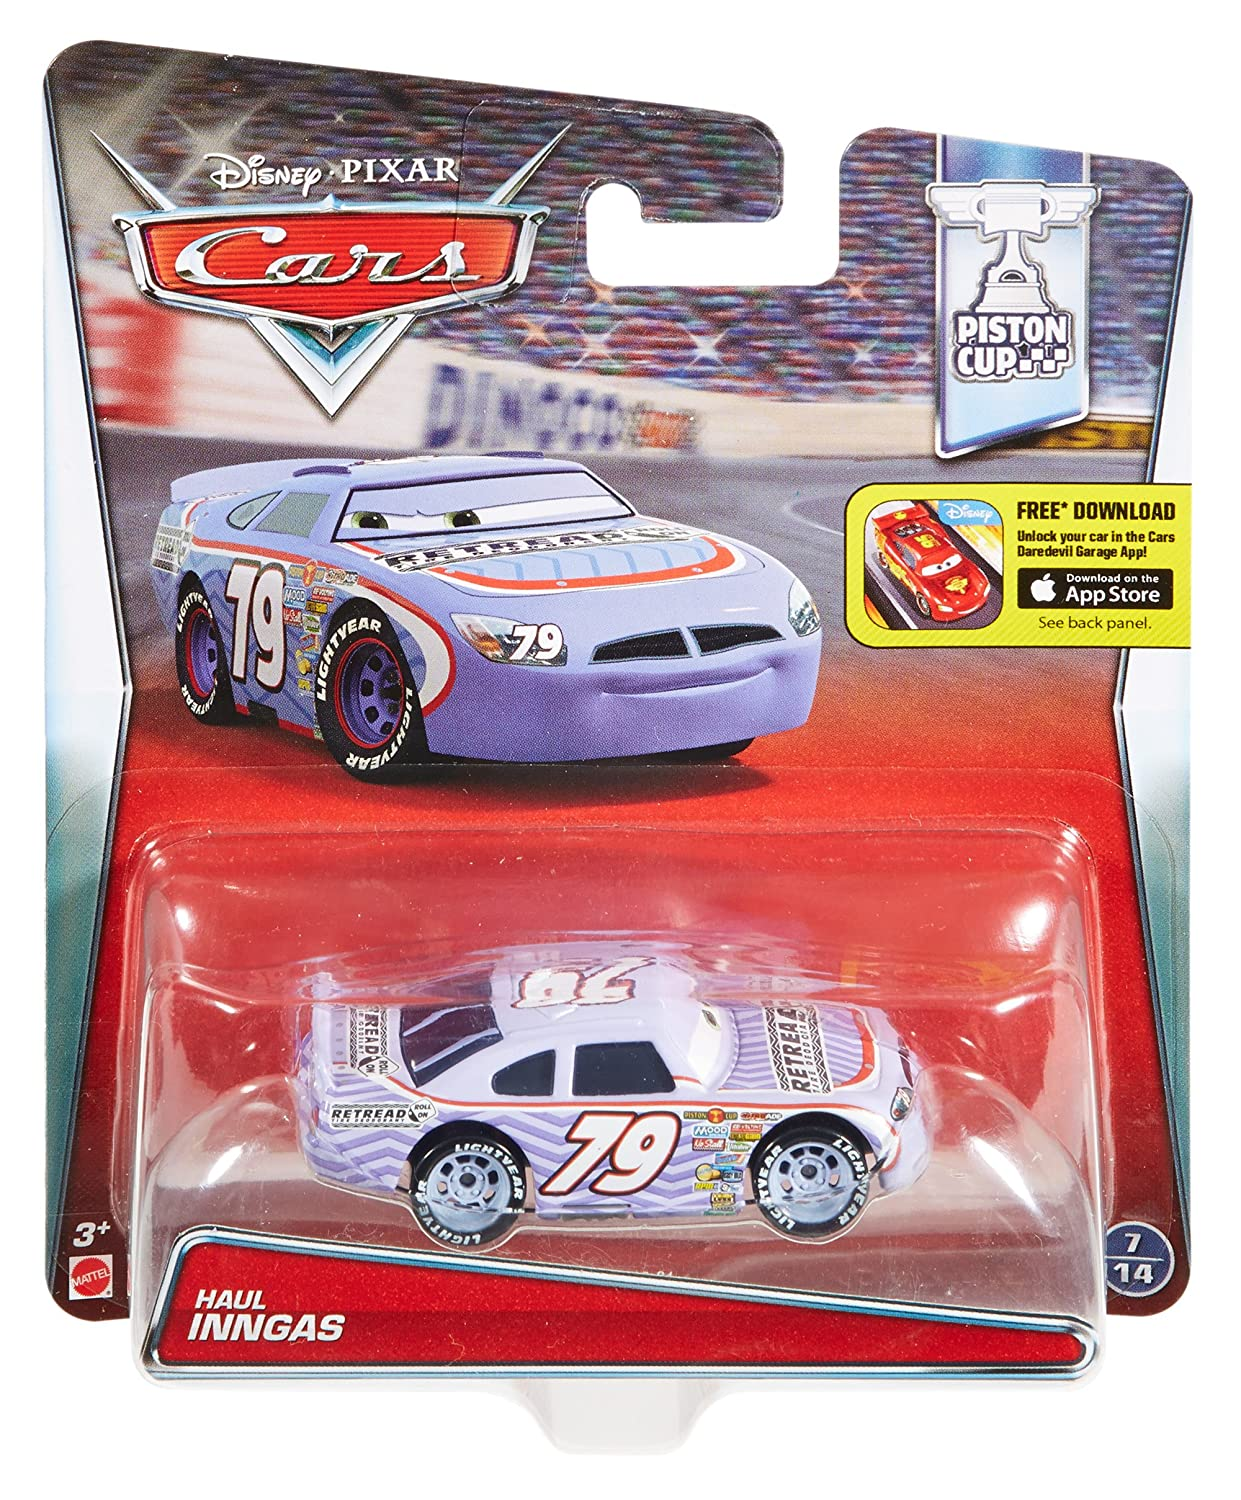 Disney/Pixar Cars Haul Inngas Vehicle by Mattel: Amazon.es: Juguetes y juegos